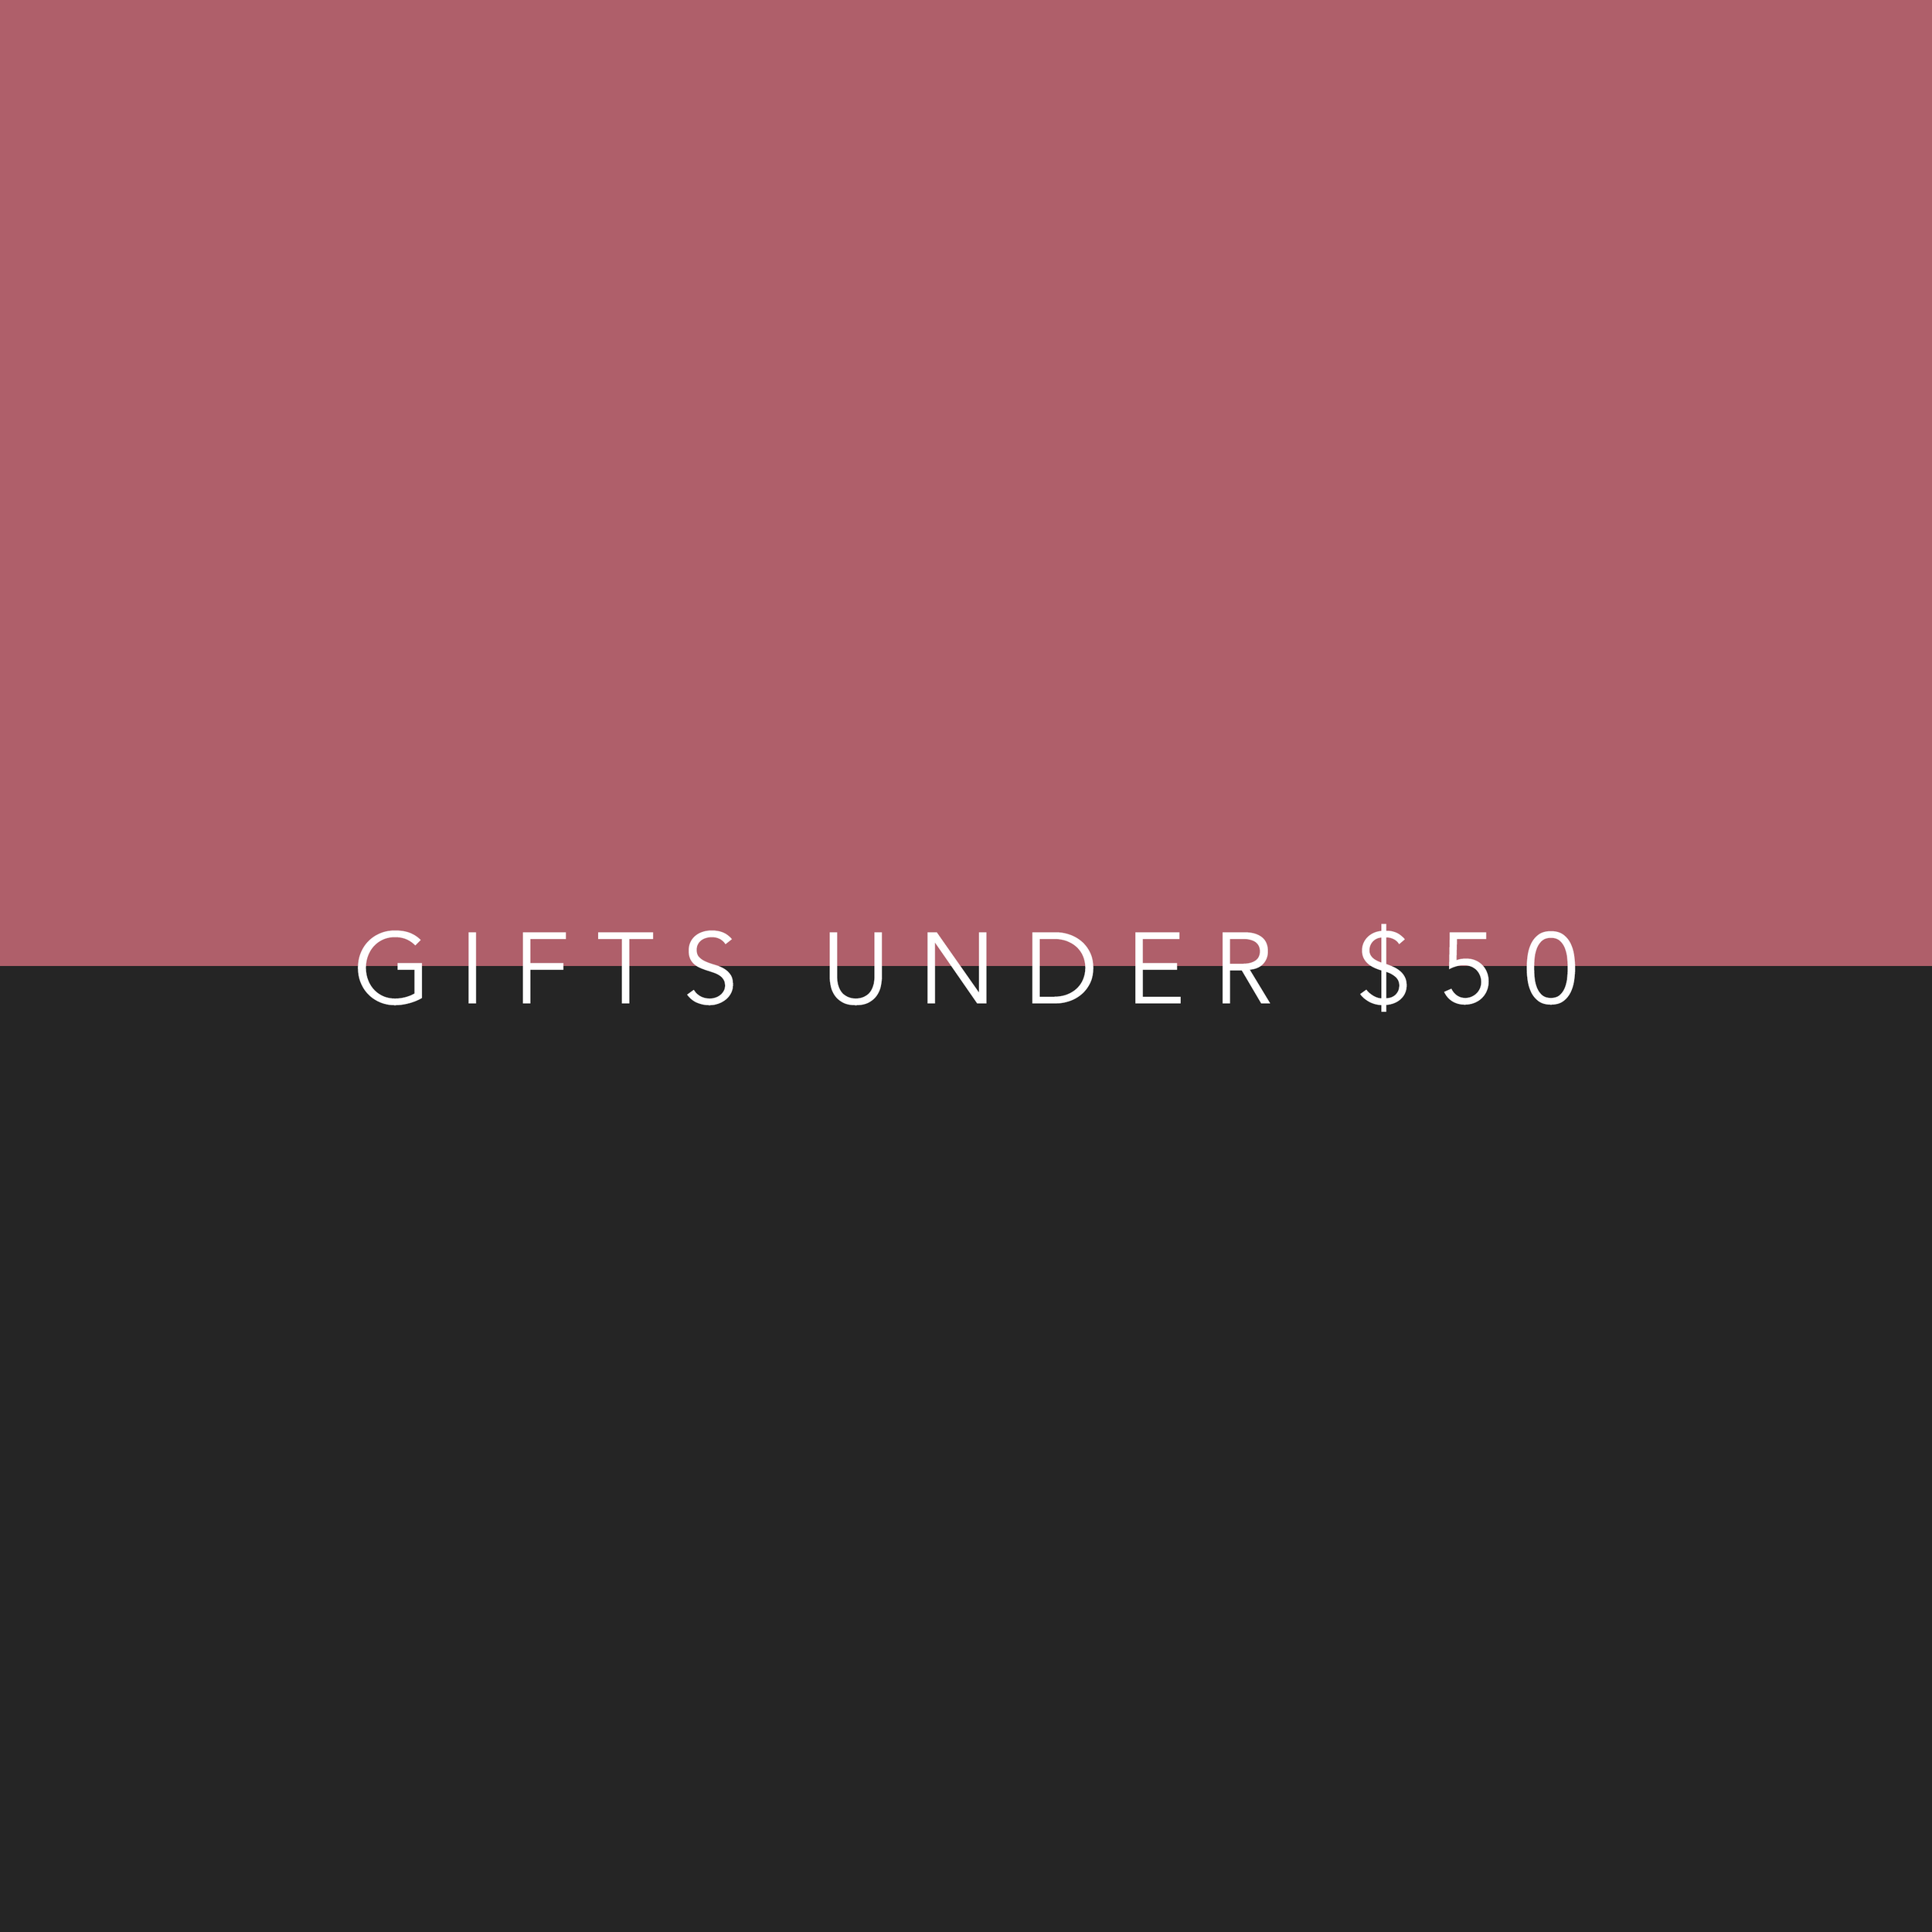 GIFTS-UNDER-50.png